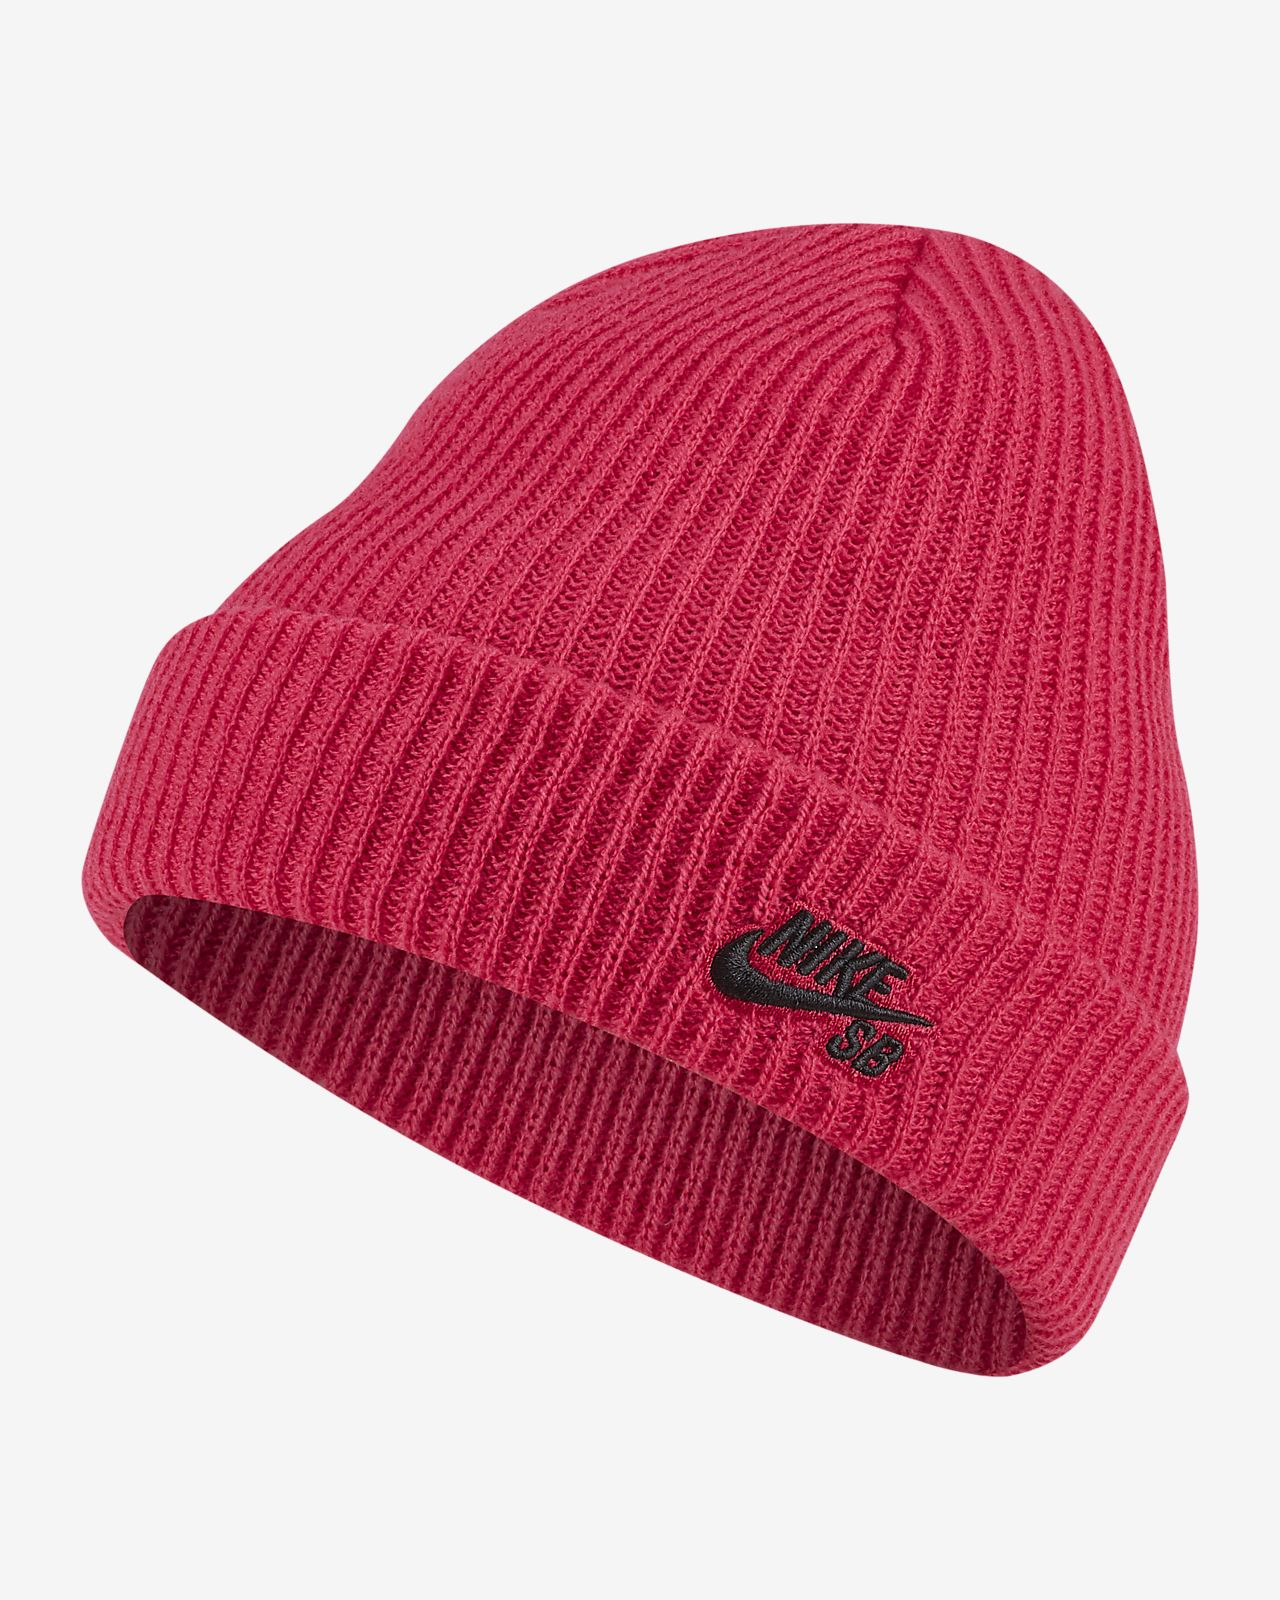 best service 1cdac 5b86d Knit Hat. Nike SB Fisherman